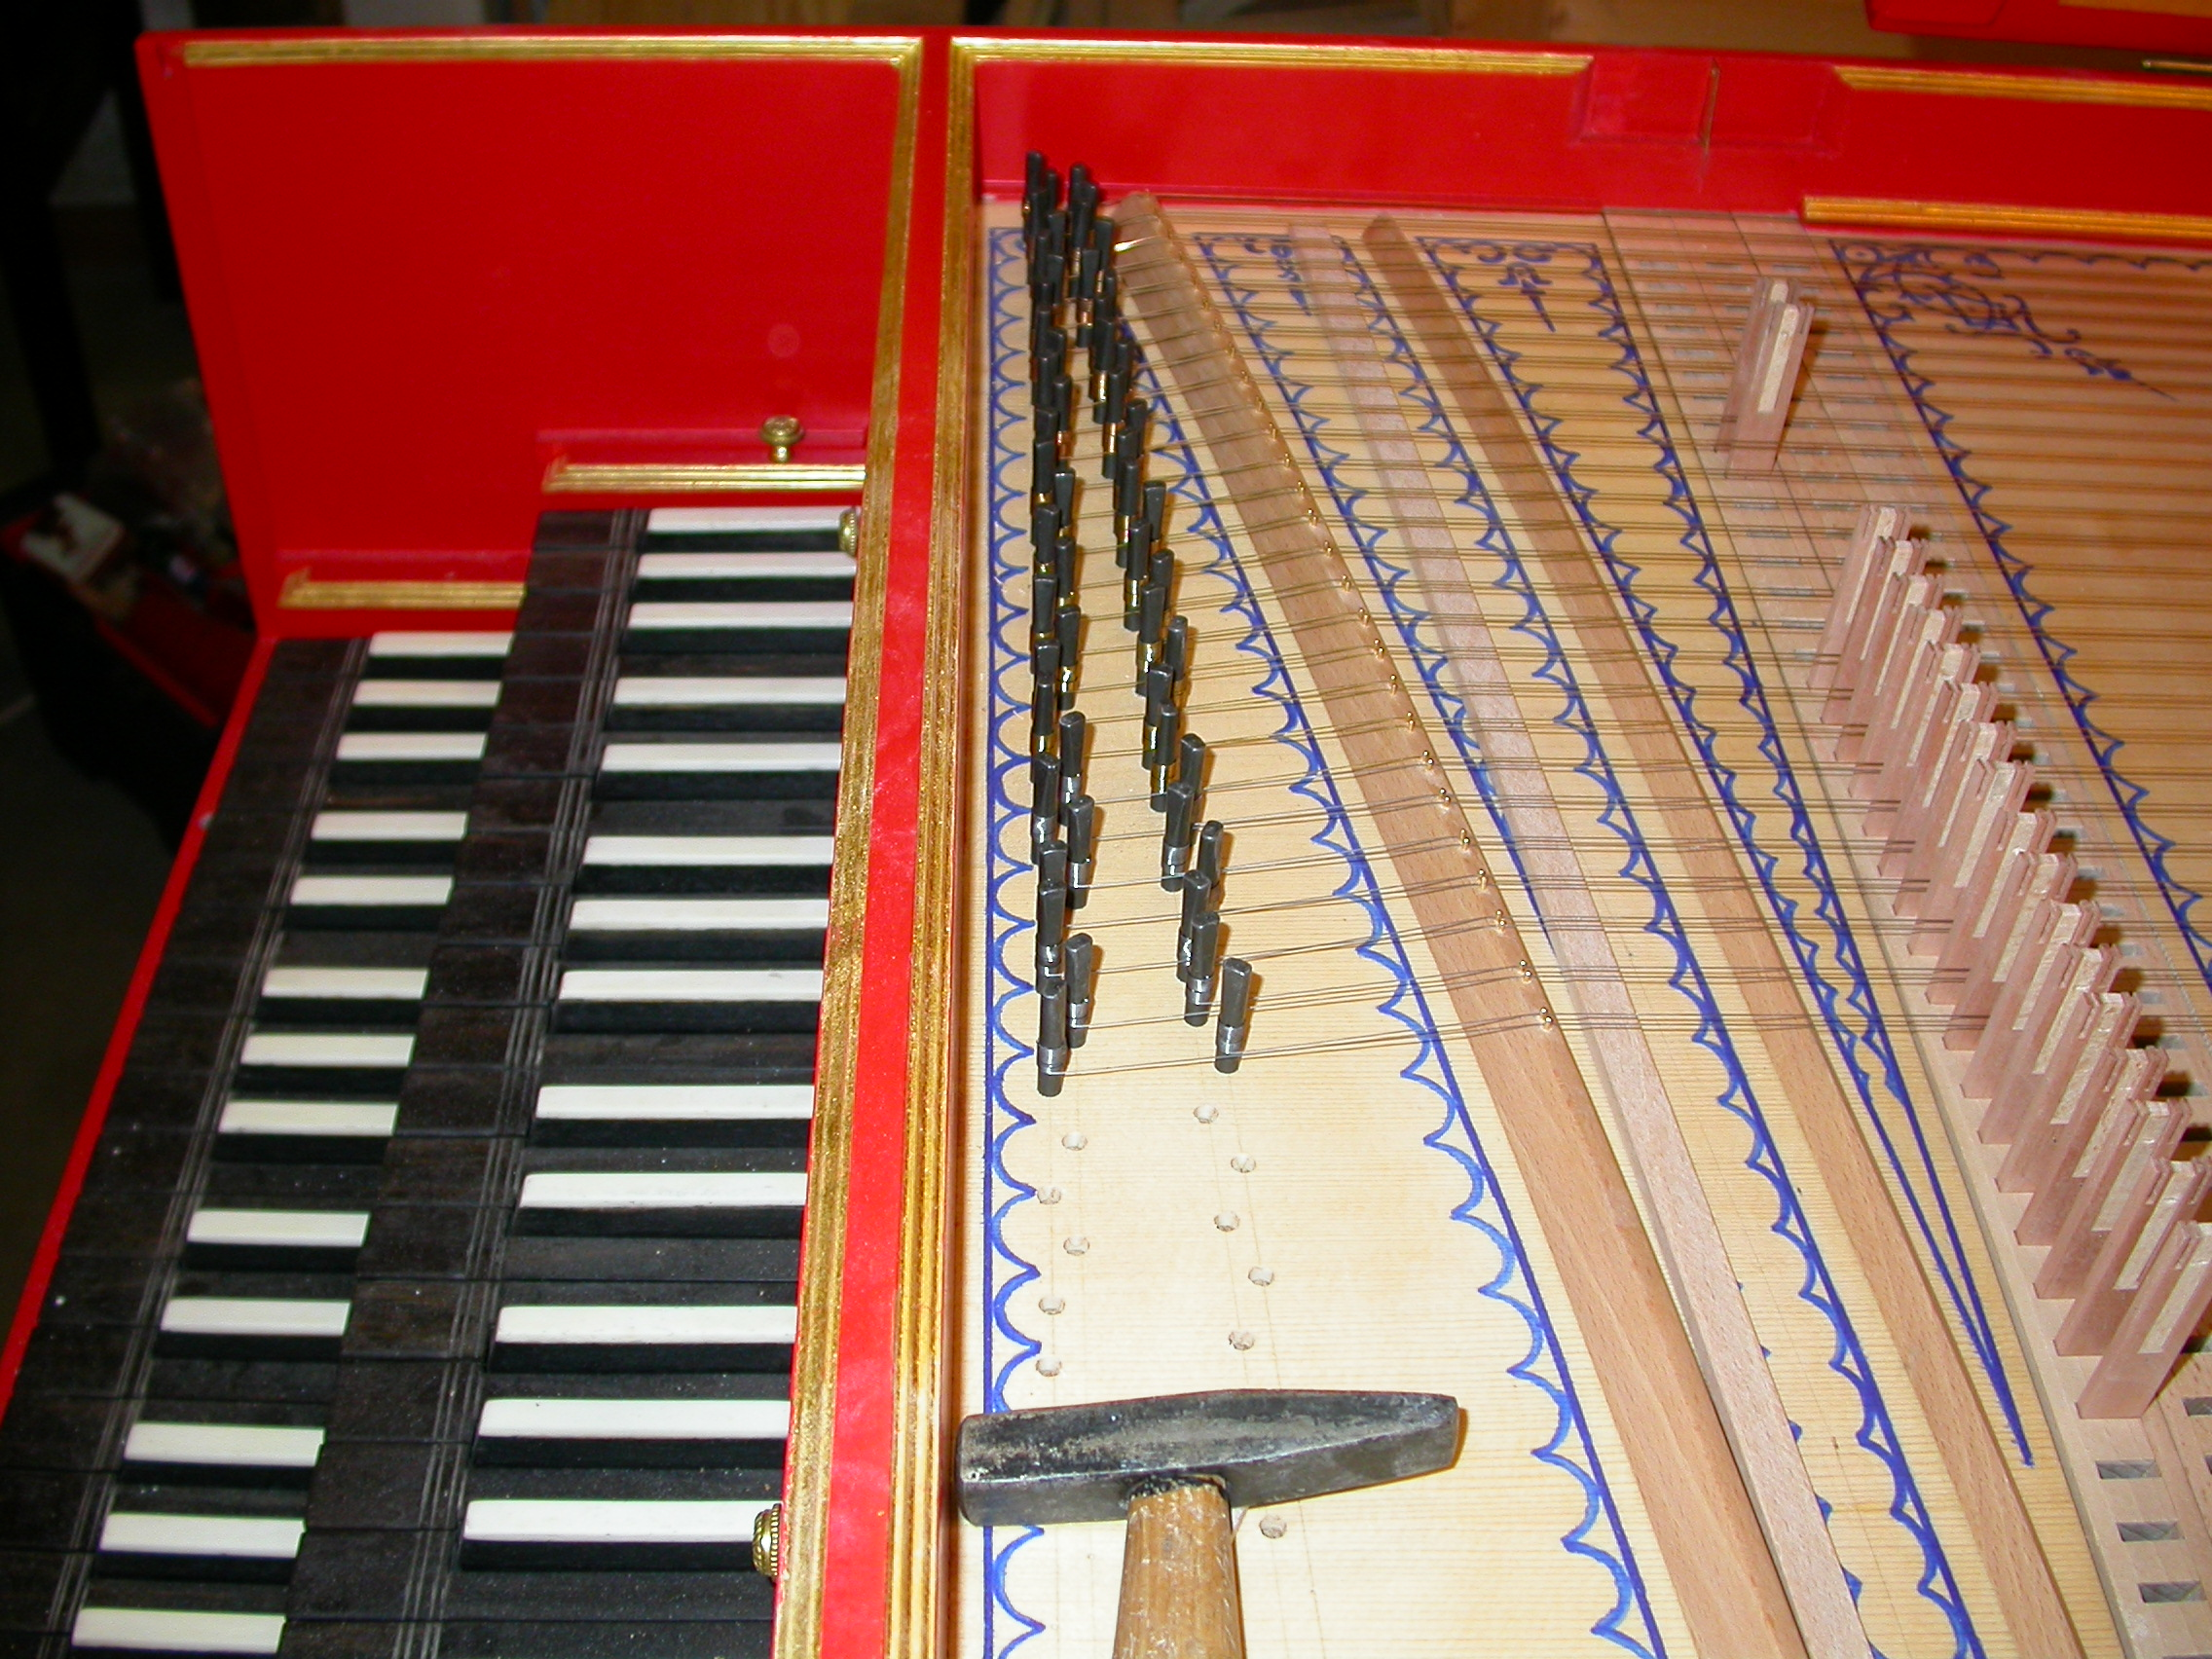 paul piano instrument music keys hammer in the making under cinstruction craft school snares pegs